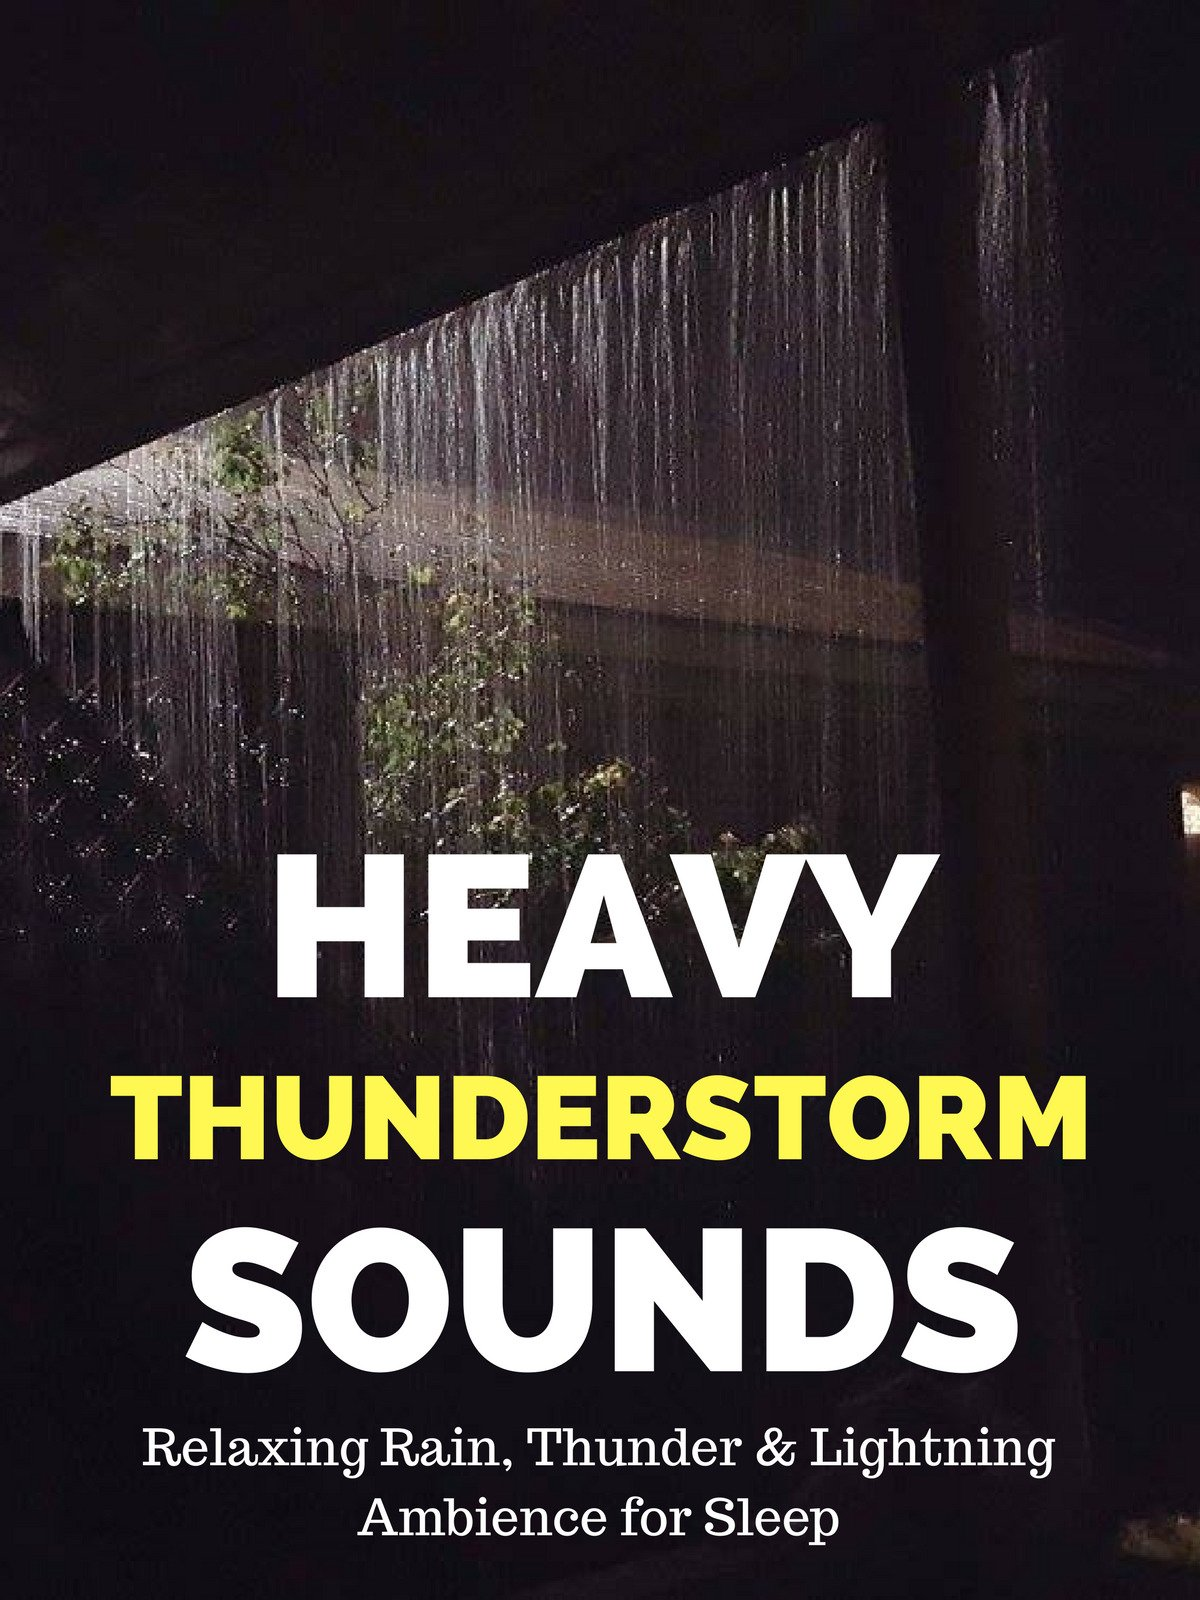 Heavy Thunderstorm Sounds